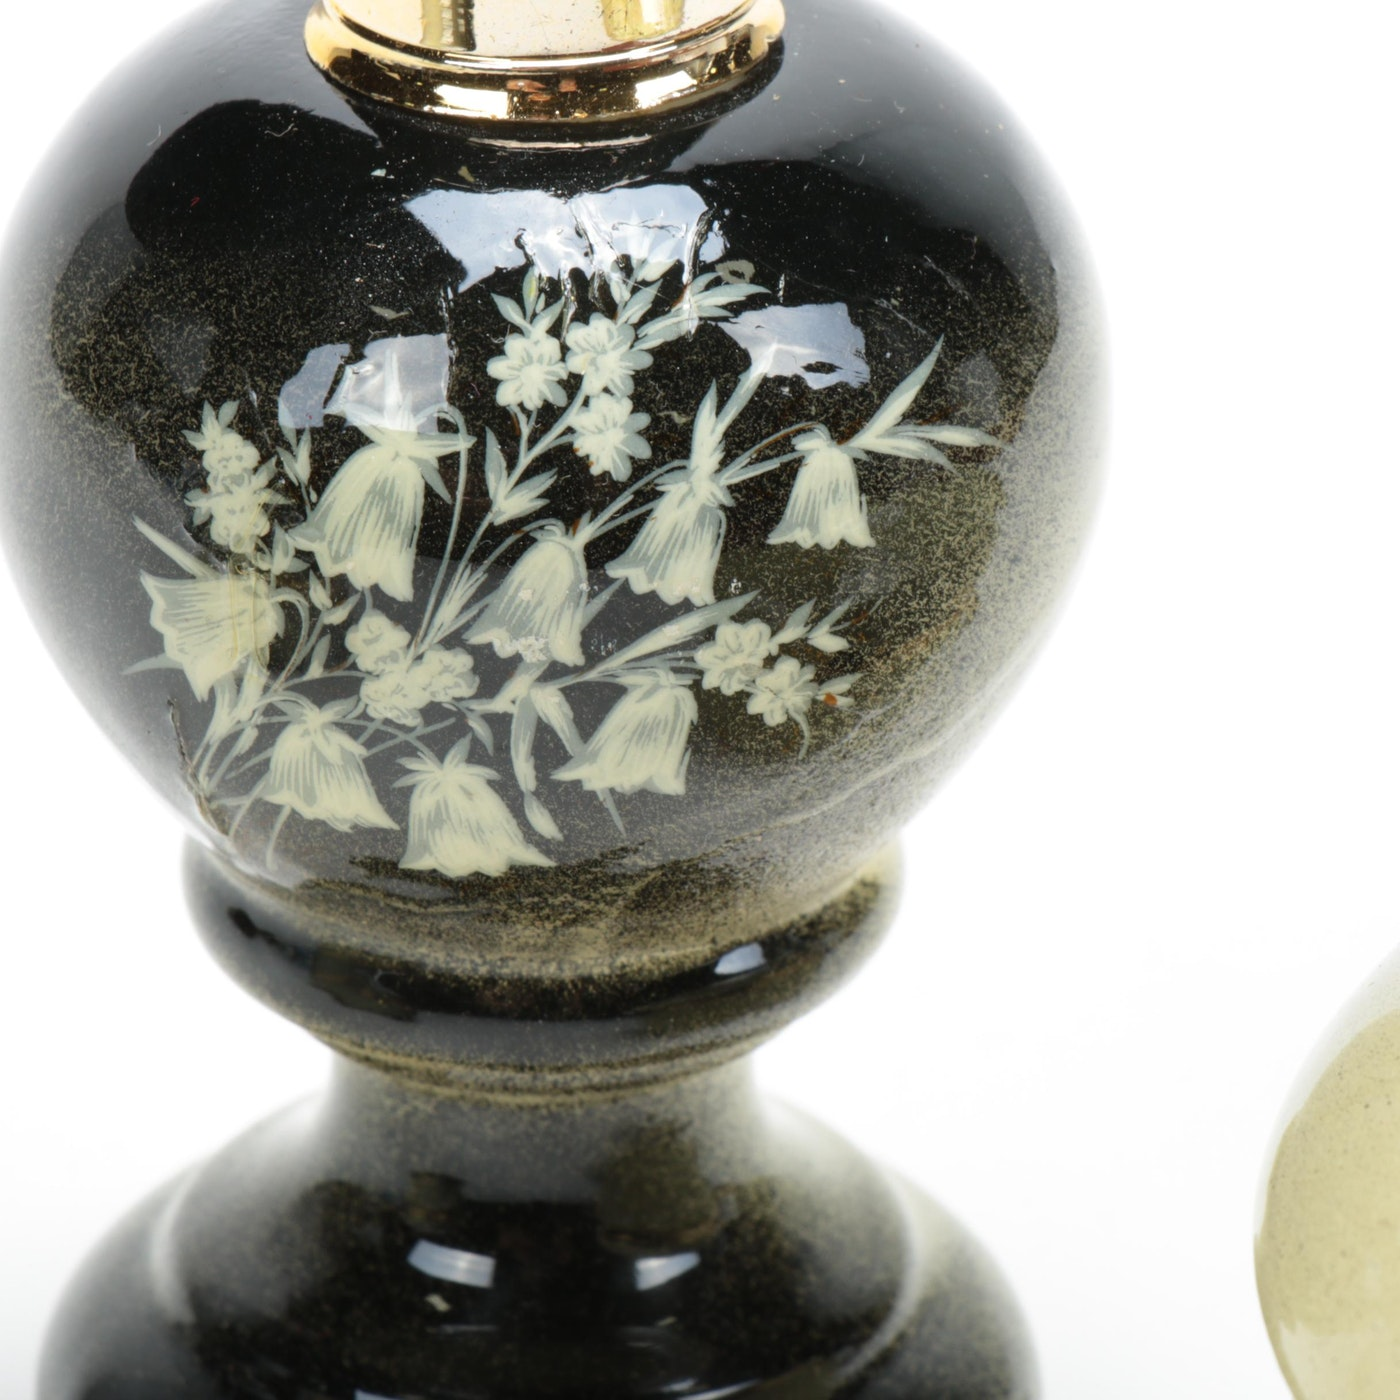 BEAUTIFUL COLLECTIBLE PERFUME BOTTLE WITH FROSTED GLASS